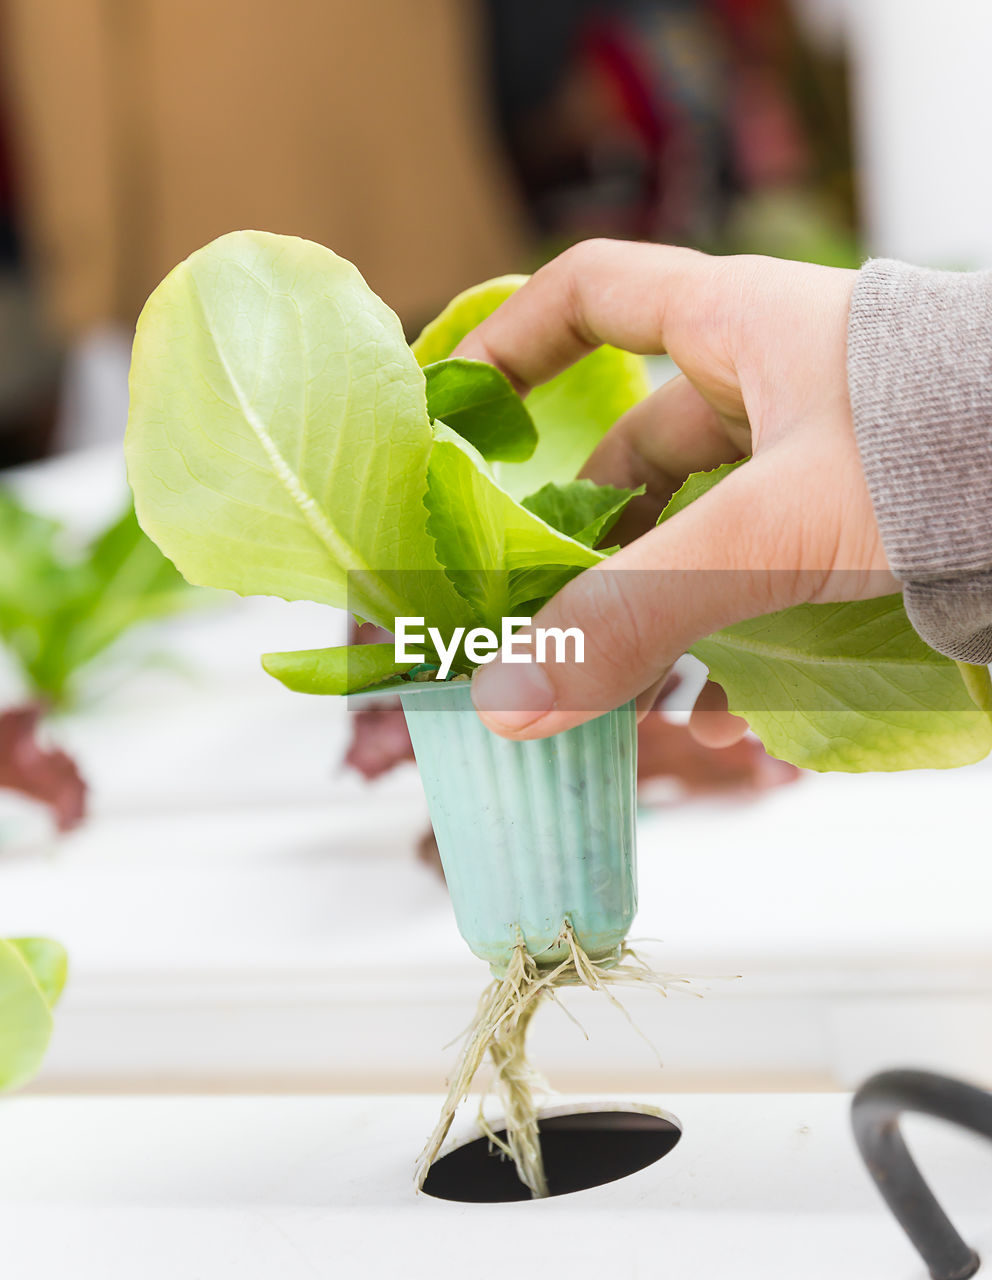 human hand, hand, leaf, human body part, plant part, green color, one person, real people, focus on foreground, holding, indoors, close-up, lifestyles, food, freshness, food and drink, nature, unrecognizable person, vegetable, finger, leaves